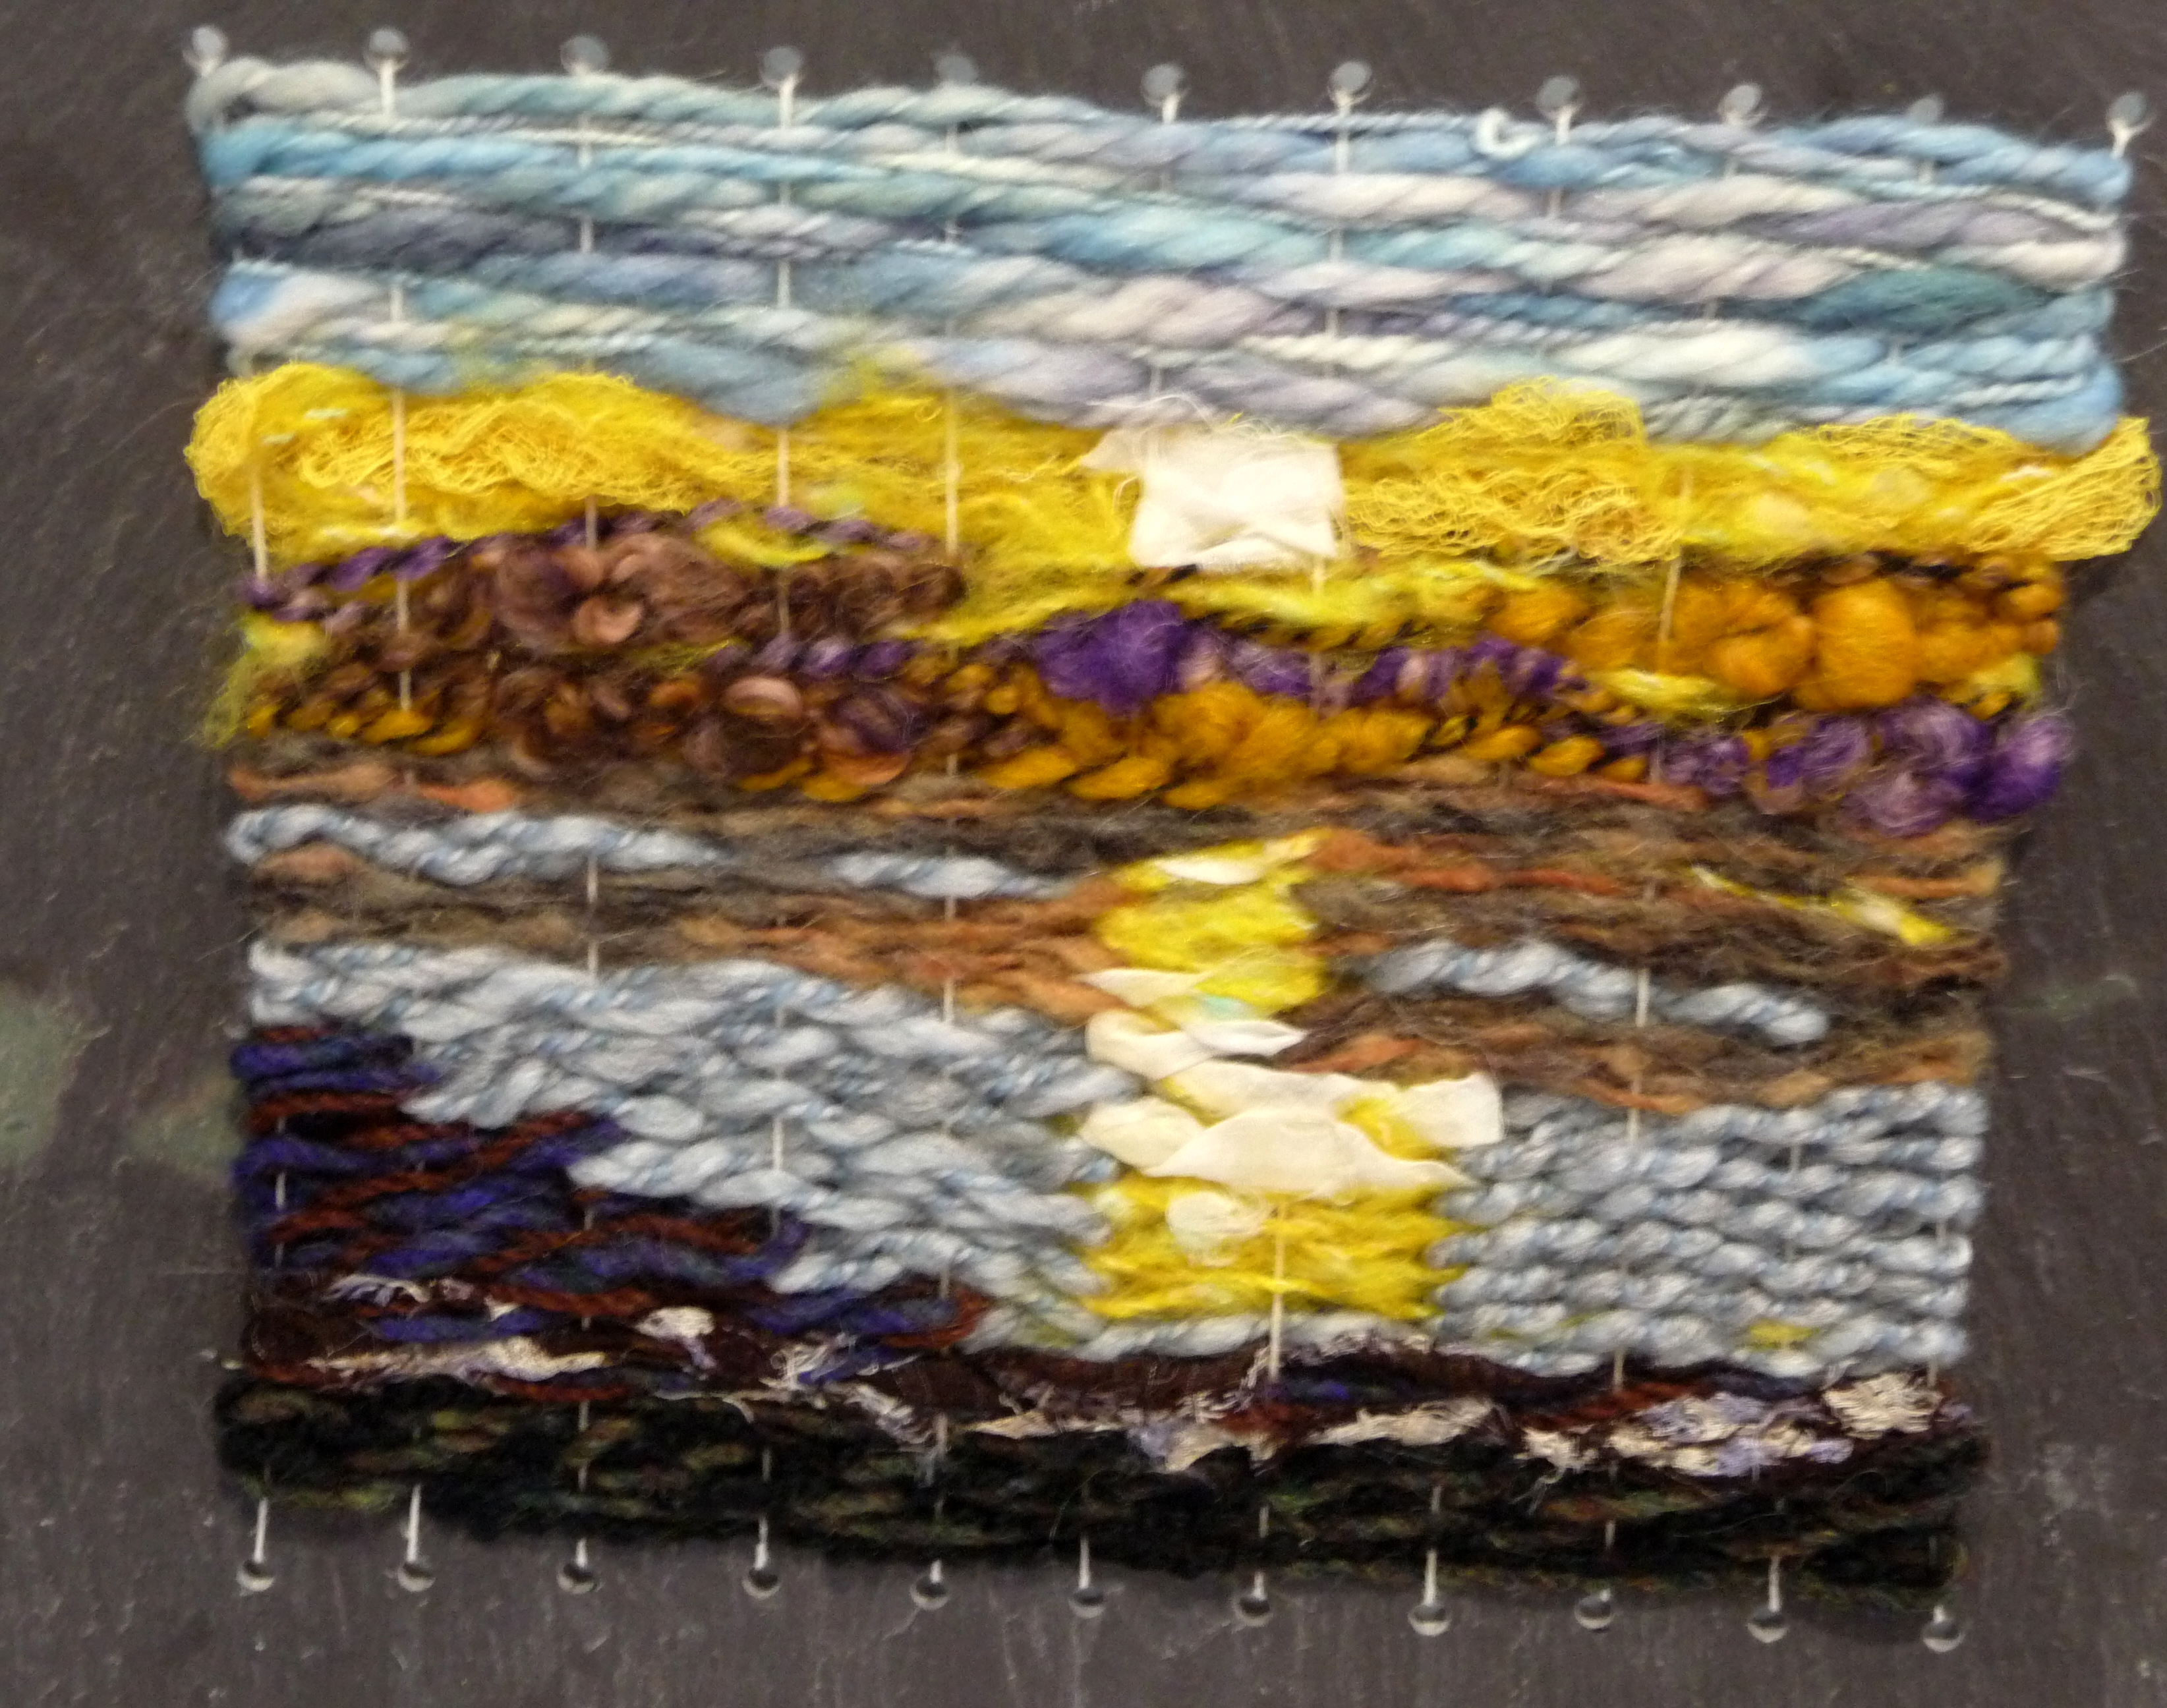 WEAVING 1 by Ronalda White, mixed fibres on slate